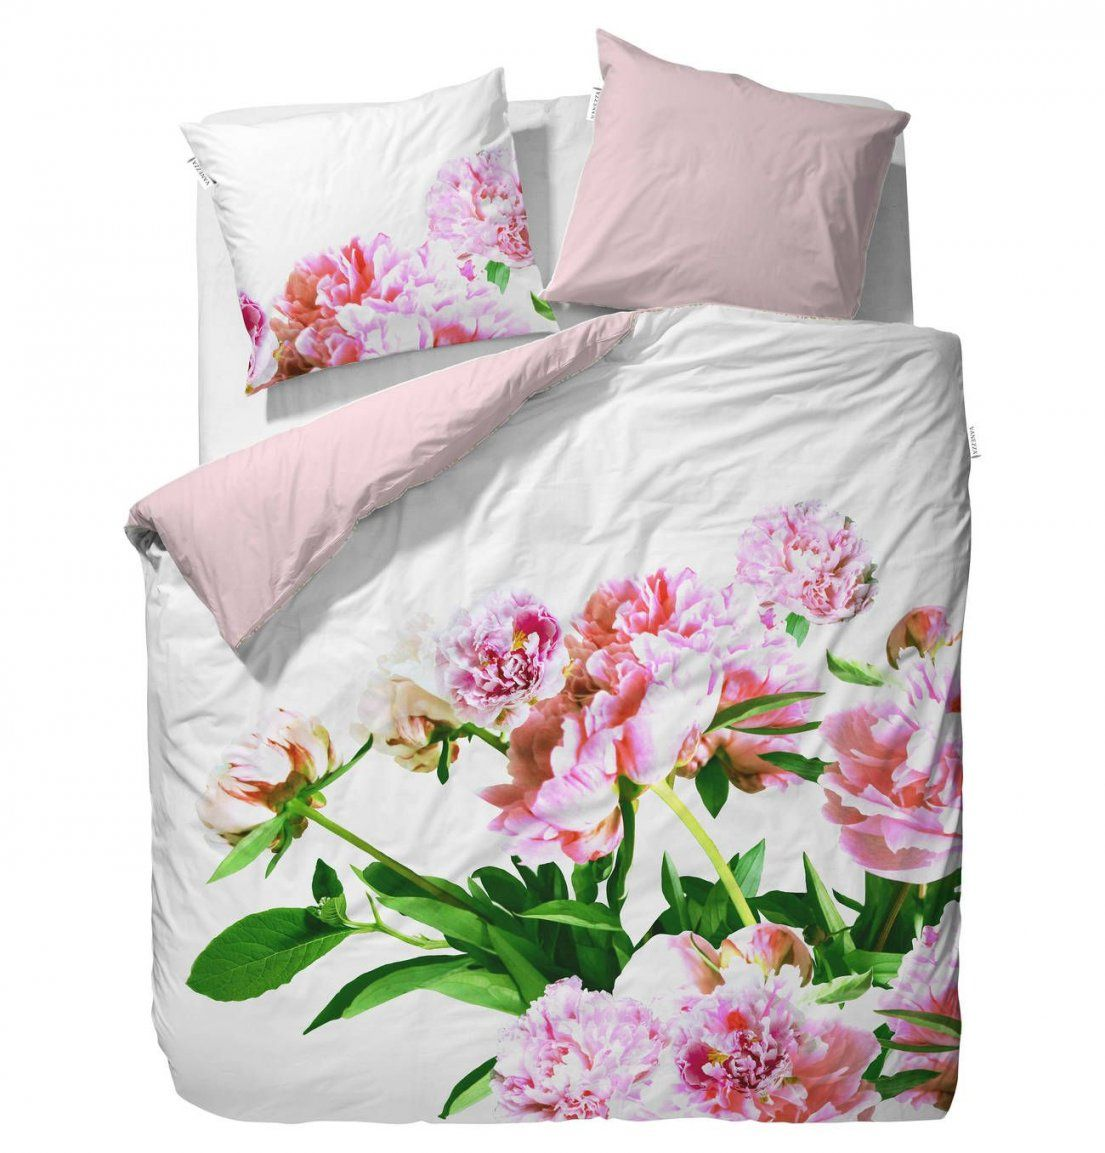 Essenza Satin Bettwäschegarnitur Quot Karin Quot German Bedding